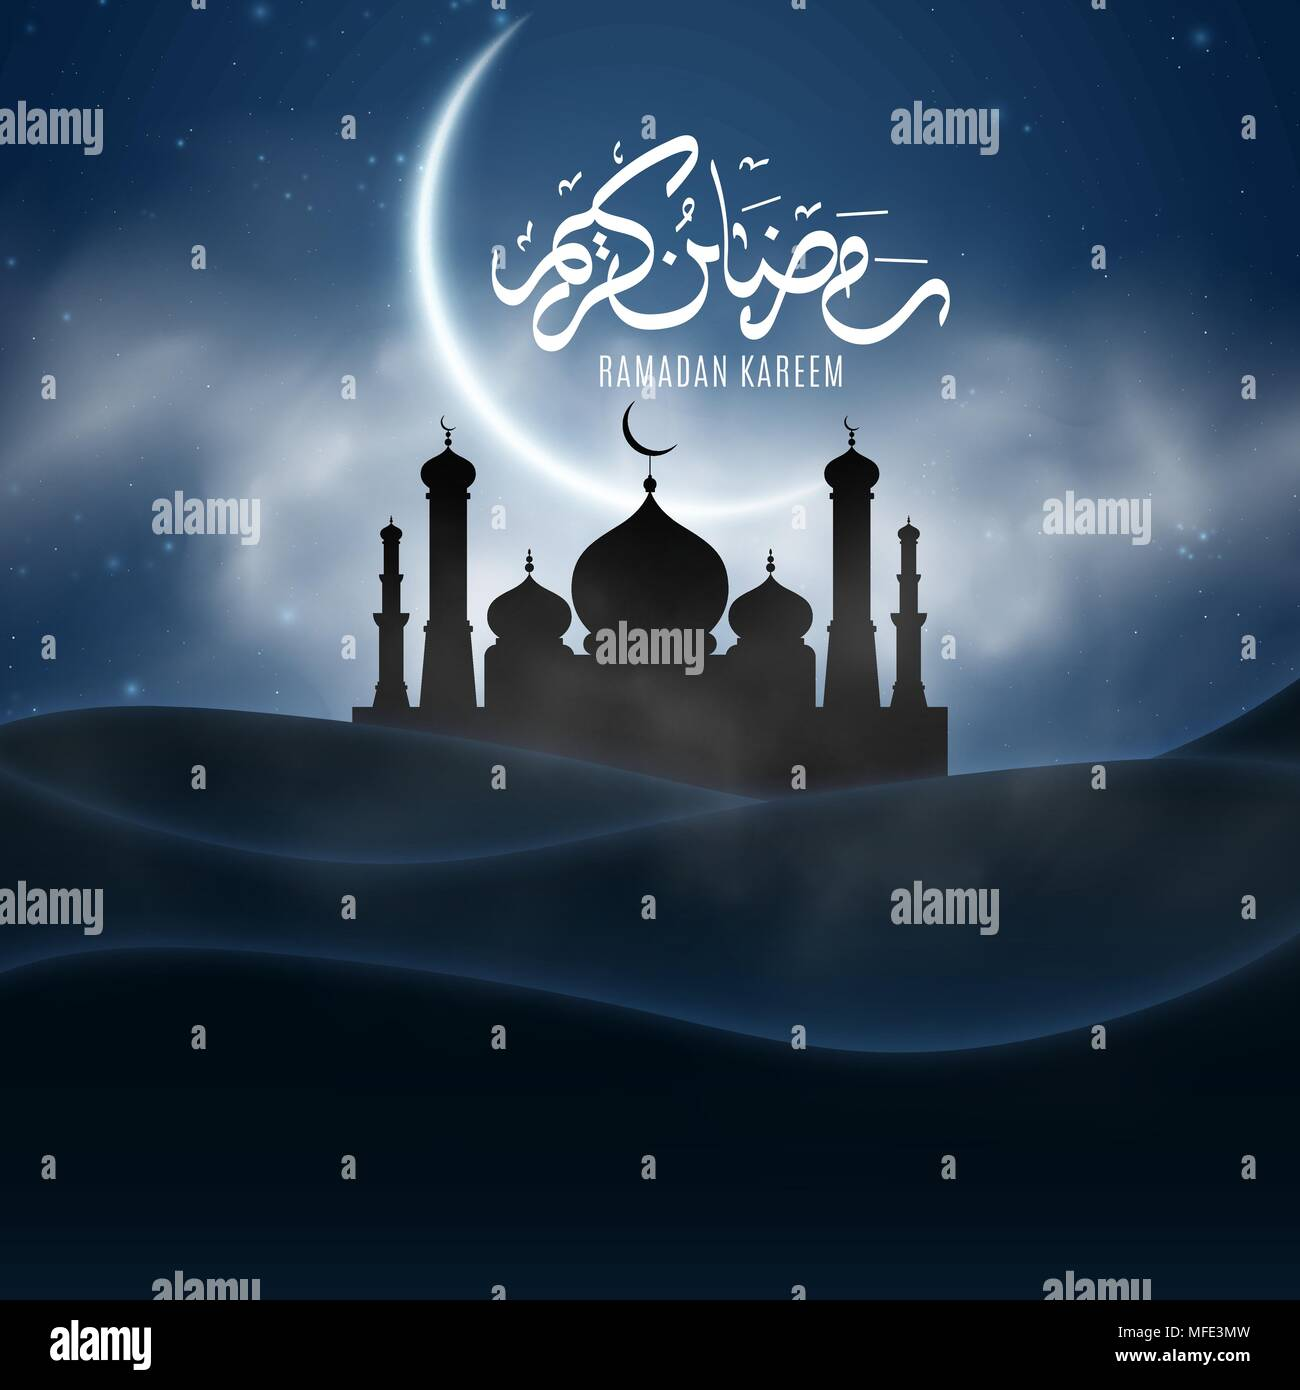 Wallpaper for Ramadan Kareem. Religion Holy Month. Hand drawn Arabic Calligraphy. Bright moon. Fog, clouds. Old Muslim city. Islamic Temple. Cover, ba